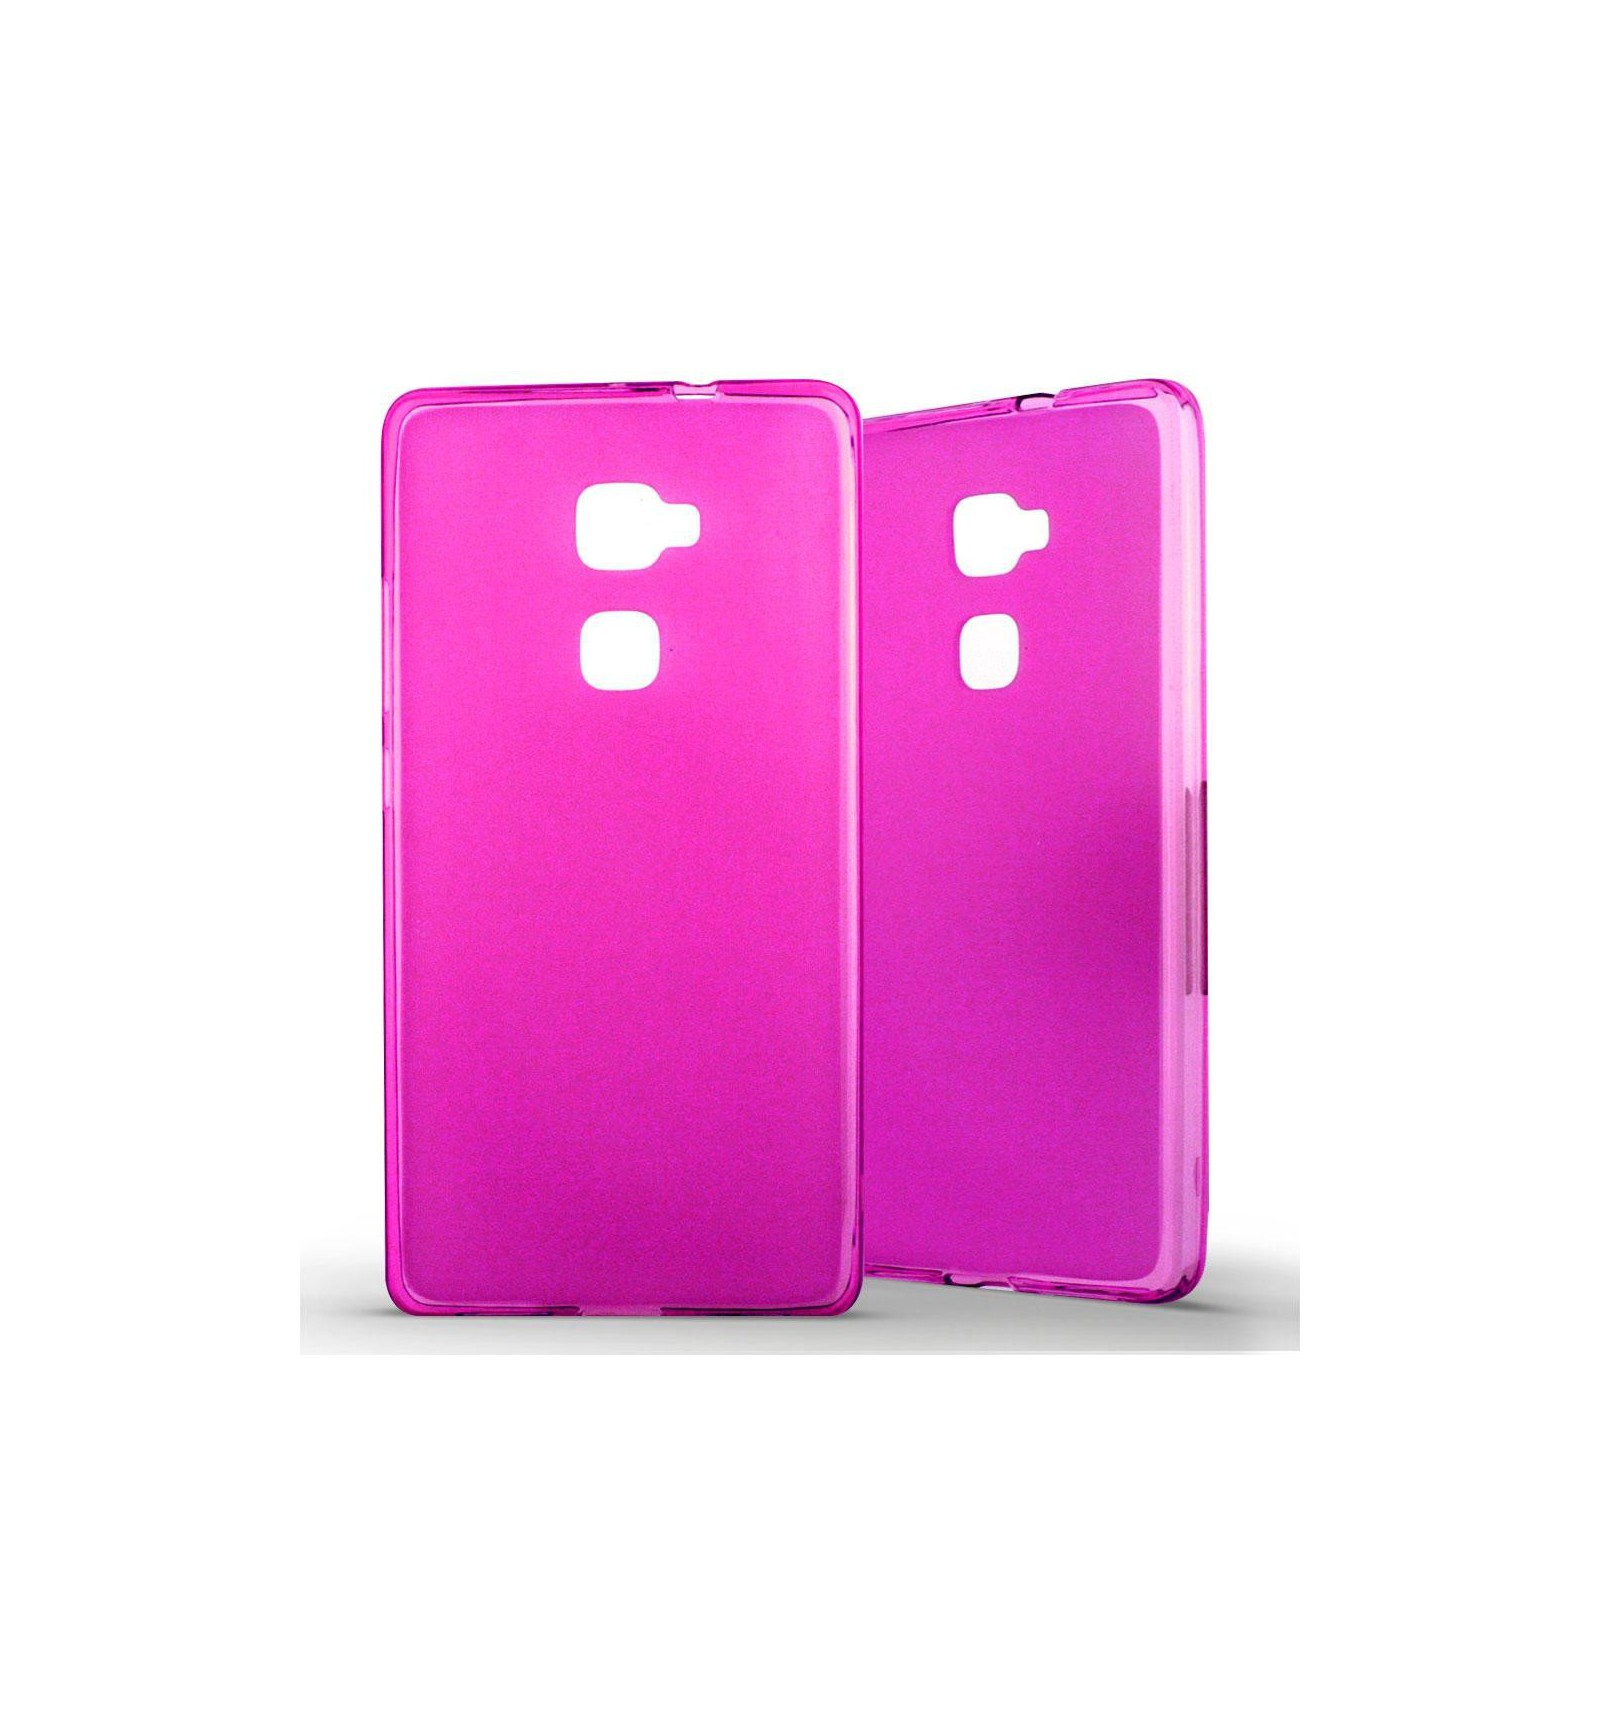 Coque Huawei Mate S Silicone Gel givré - Rose Translucide